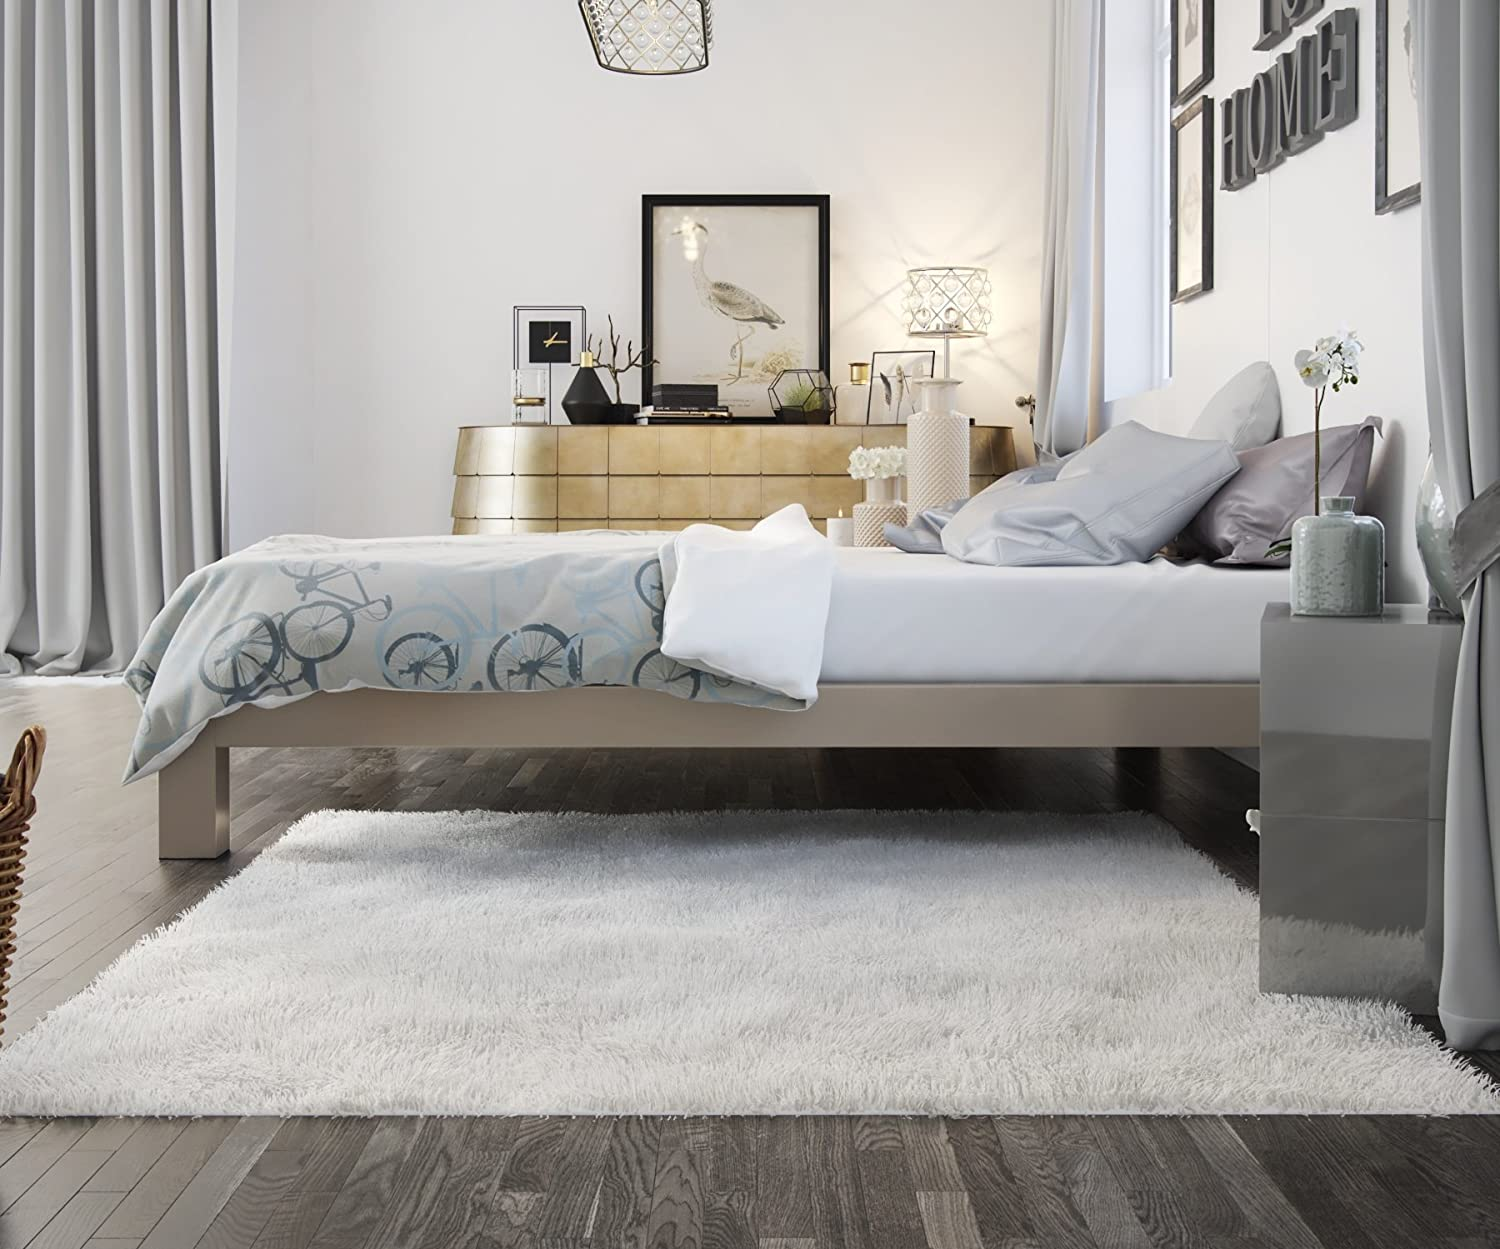 In Style Furnishings Stella Modern Metal Low Profile Thick Slats Support Platform Bed Frame – Twin Size, Gray